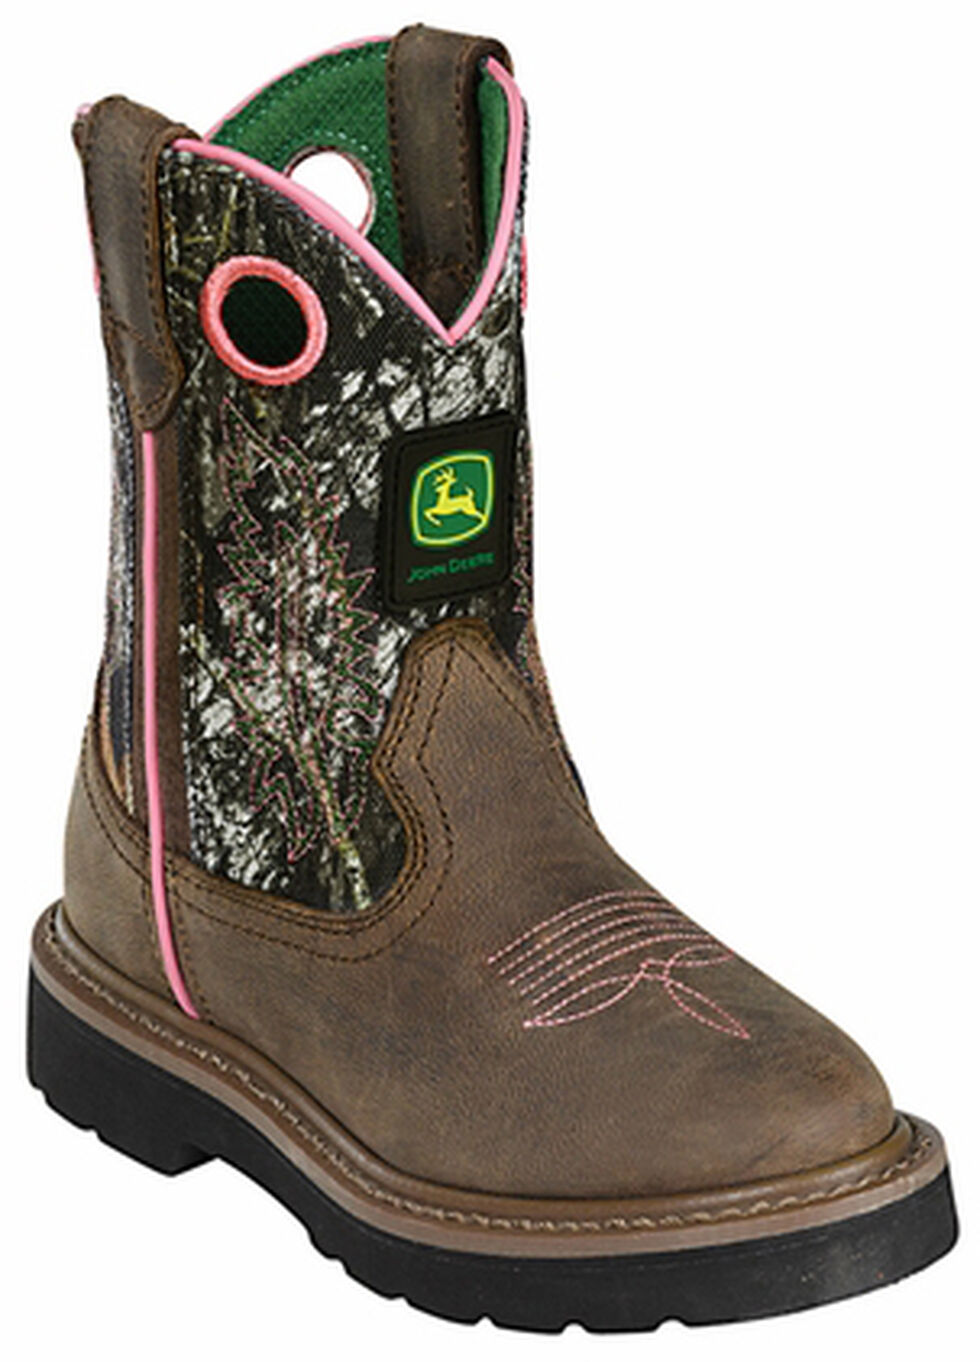 John Deere Girls' Johnny Popper Camo Western Boots - Round Toe, Camouflage, hi-res